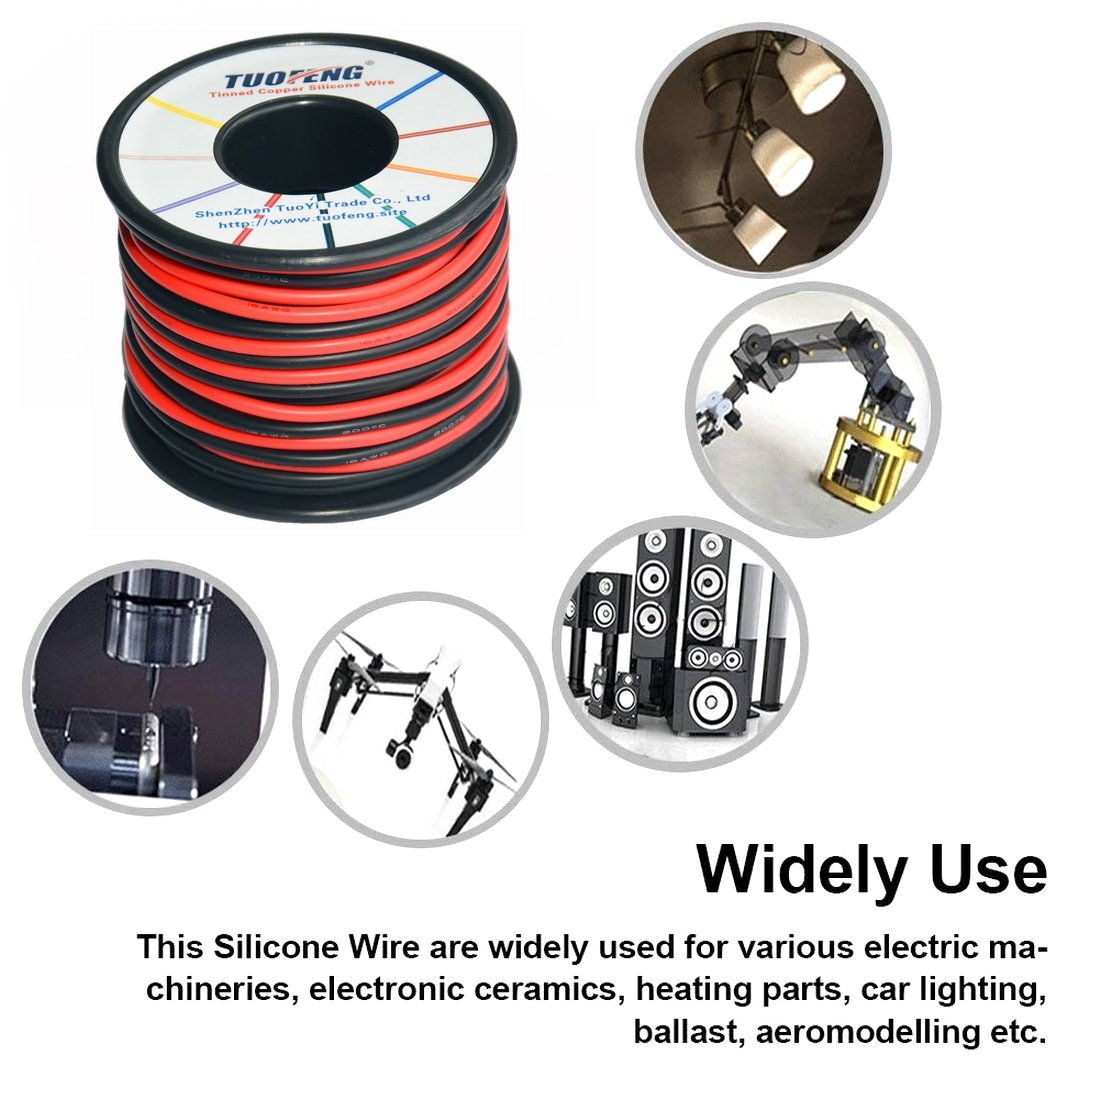 Tuofeng 18 Gauge Wire66 Feet Super Flexible Silicone Insulated China Electric Wire Electrical Copper Wires Hookup 33 Ft Black And Red 2 Separated Tinned